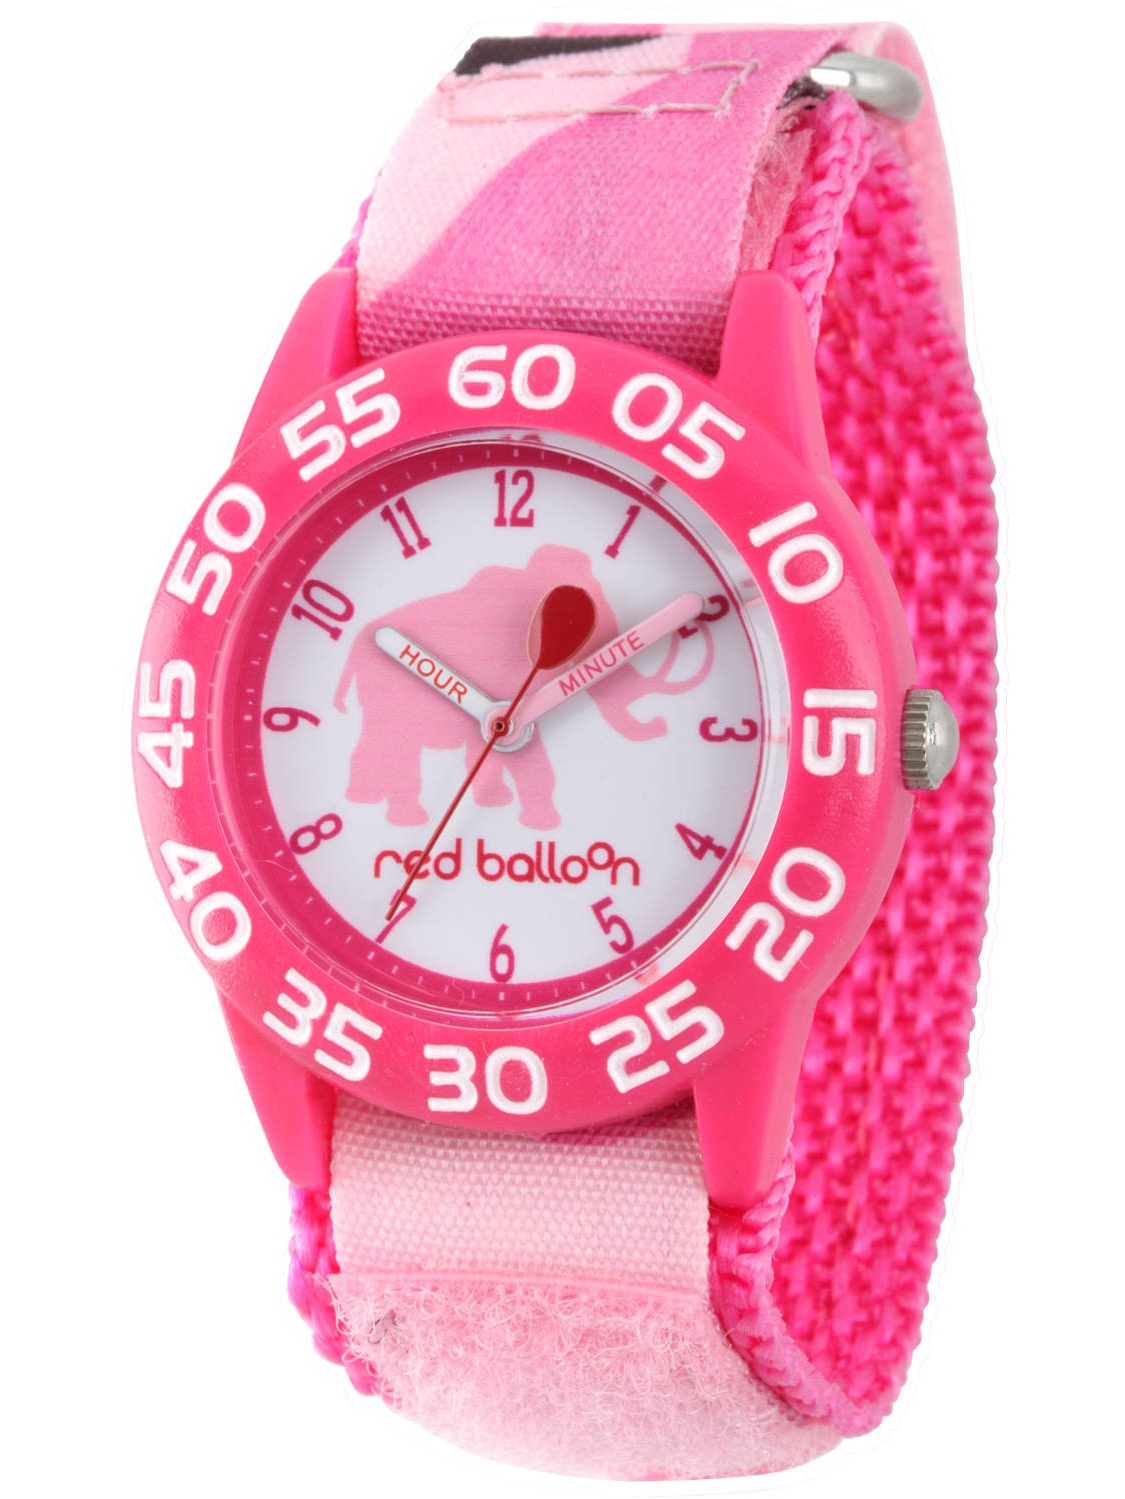 Mammoth Girls' Pink Plastic Time Teacher Watch, Pink Camo Hook and Loop Nylon Strap